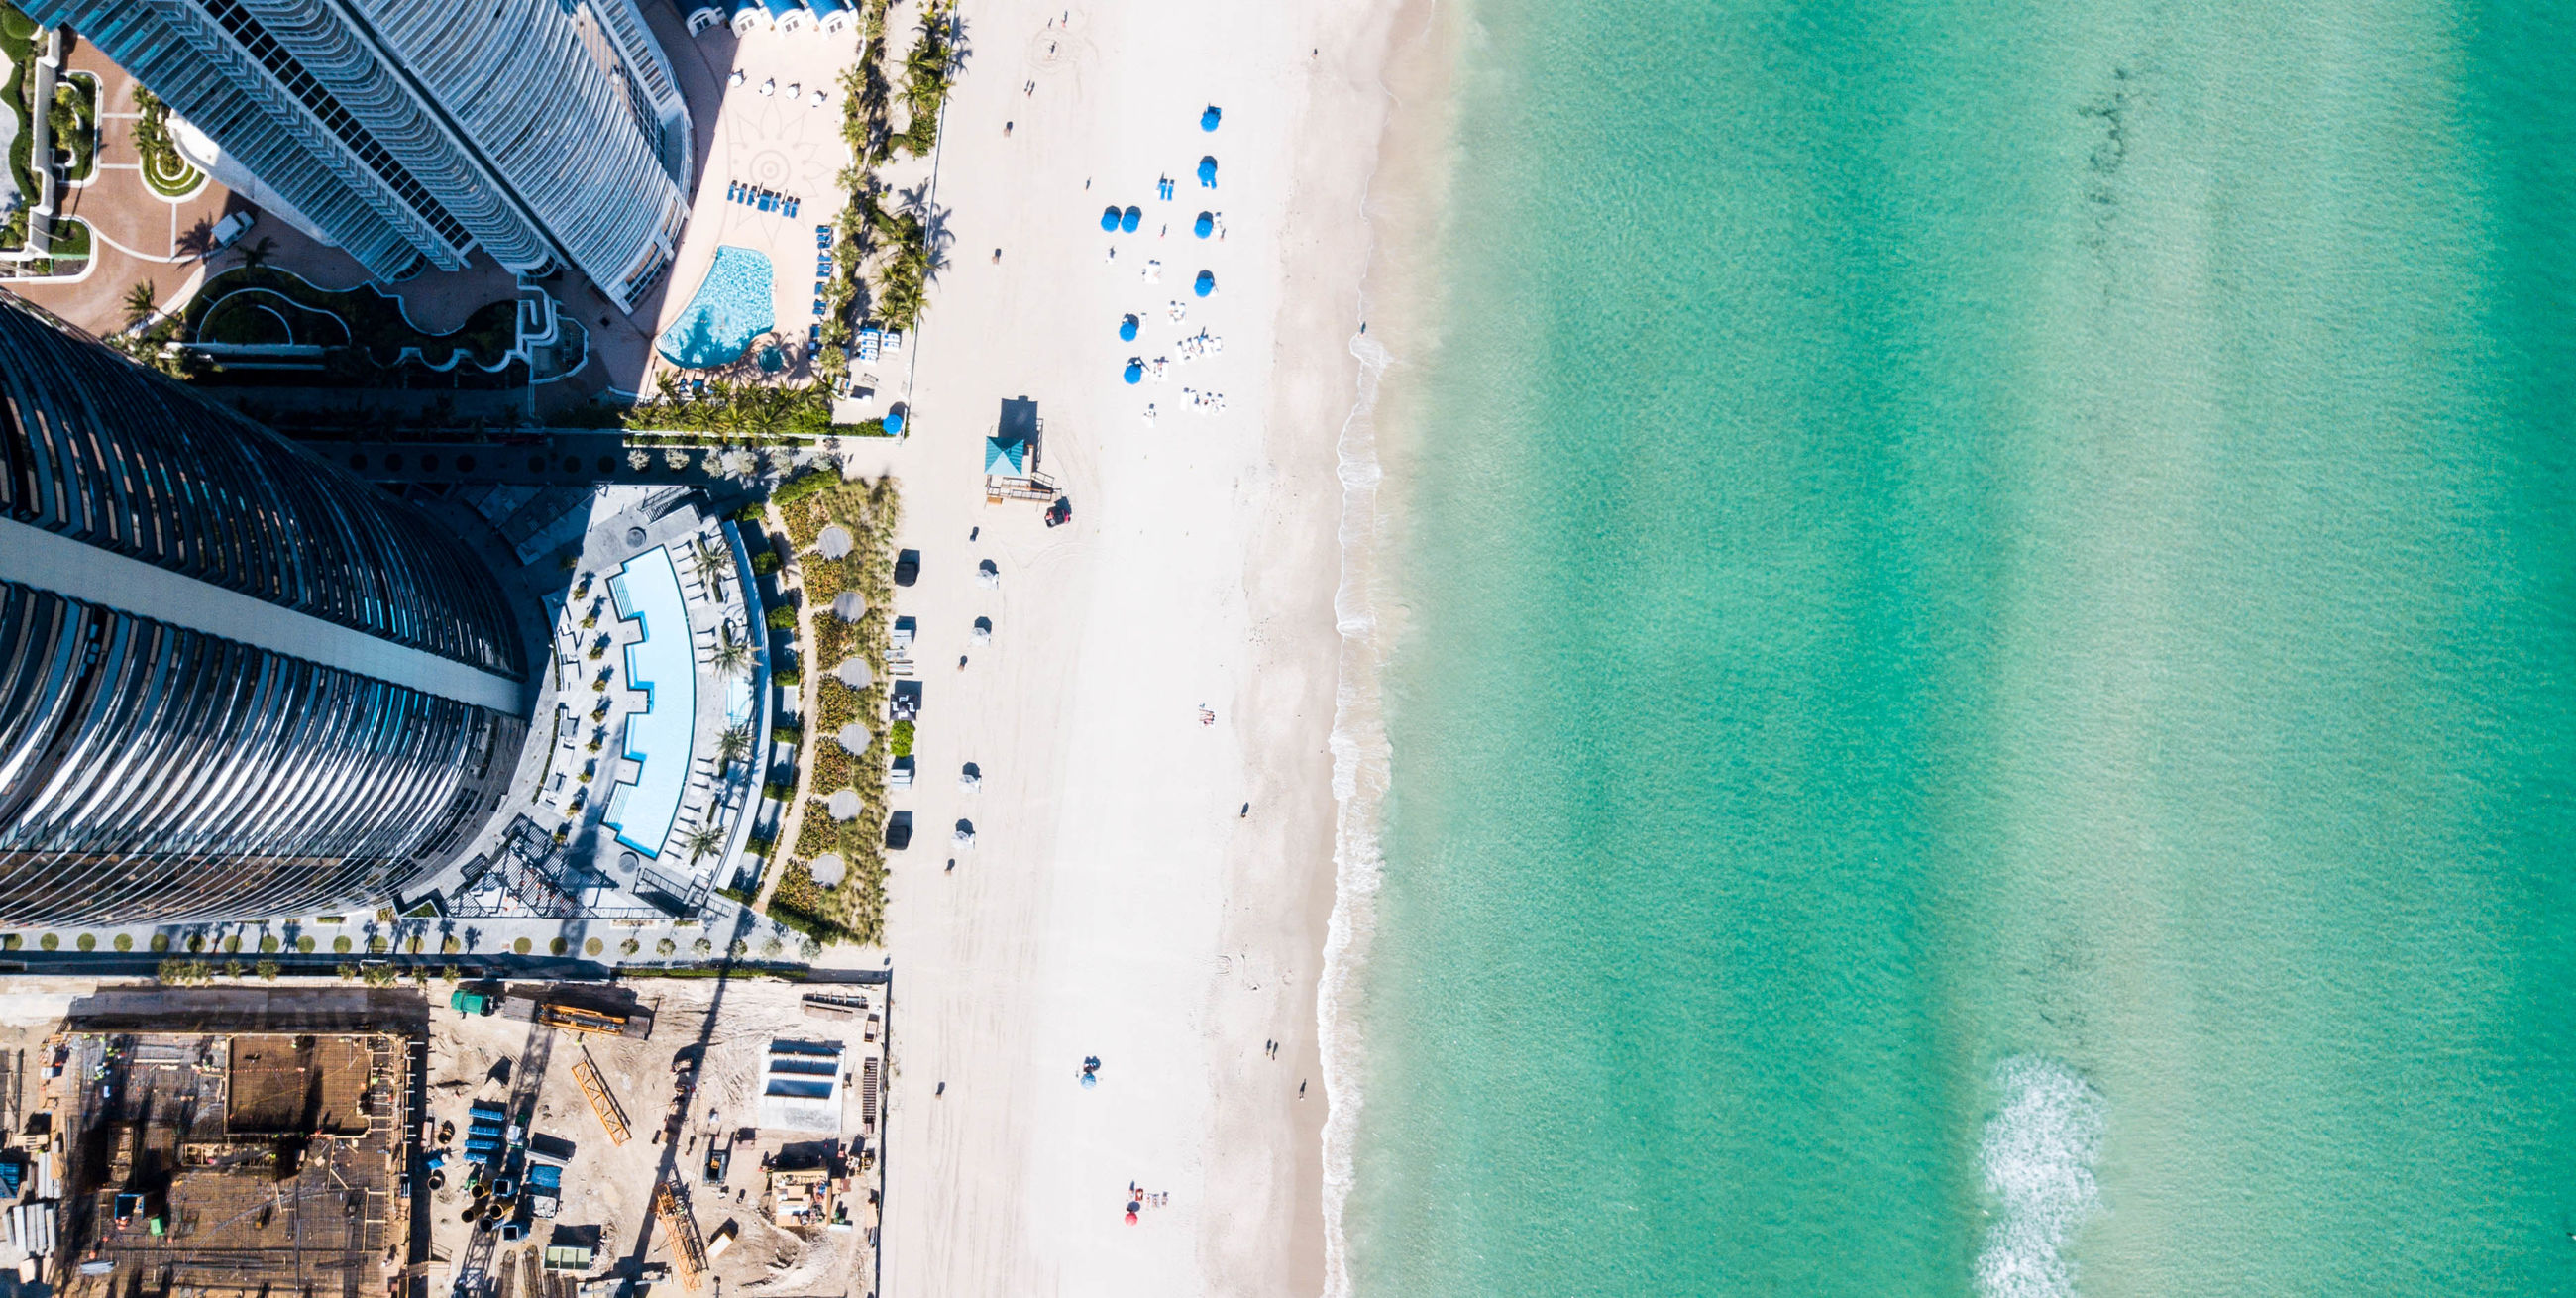 water, land, sea, day, nature, beach, architecture, built structure, incidental people, city, travel, outdoors, high angle view, building exterior, tourism, beauty in nature, real people, holiday, sand